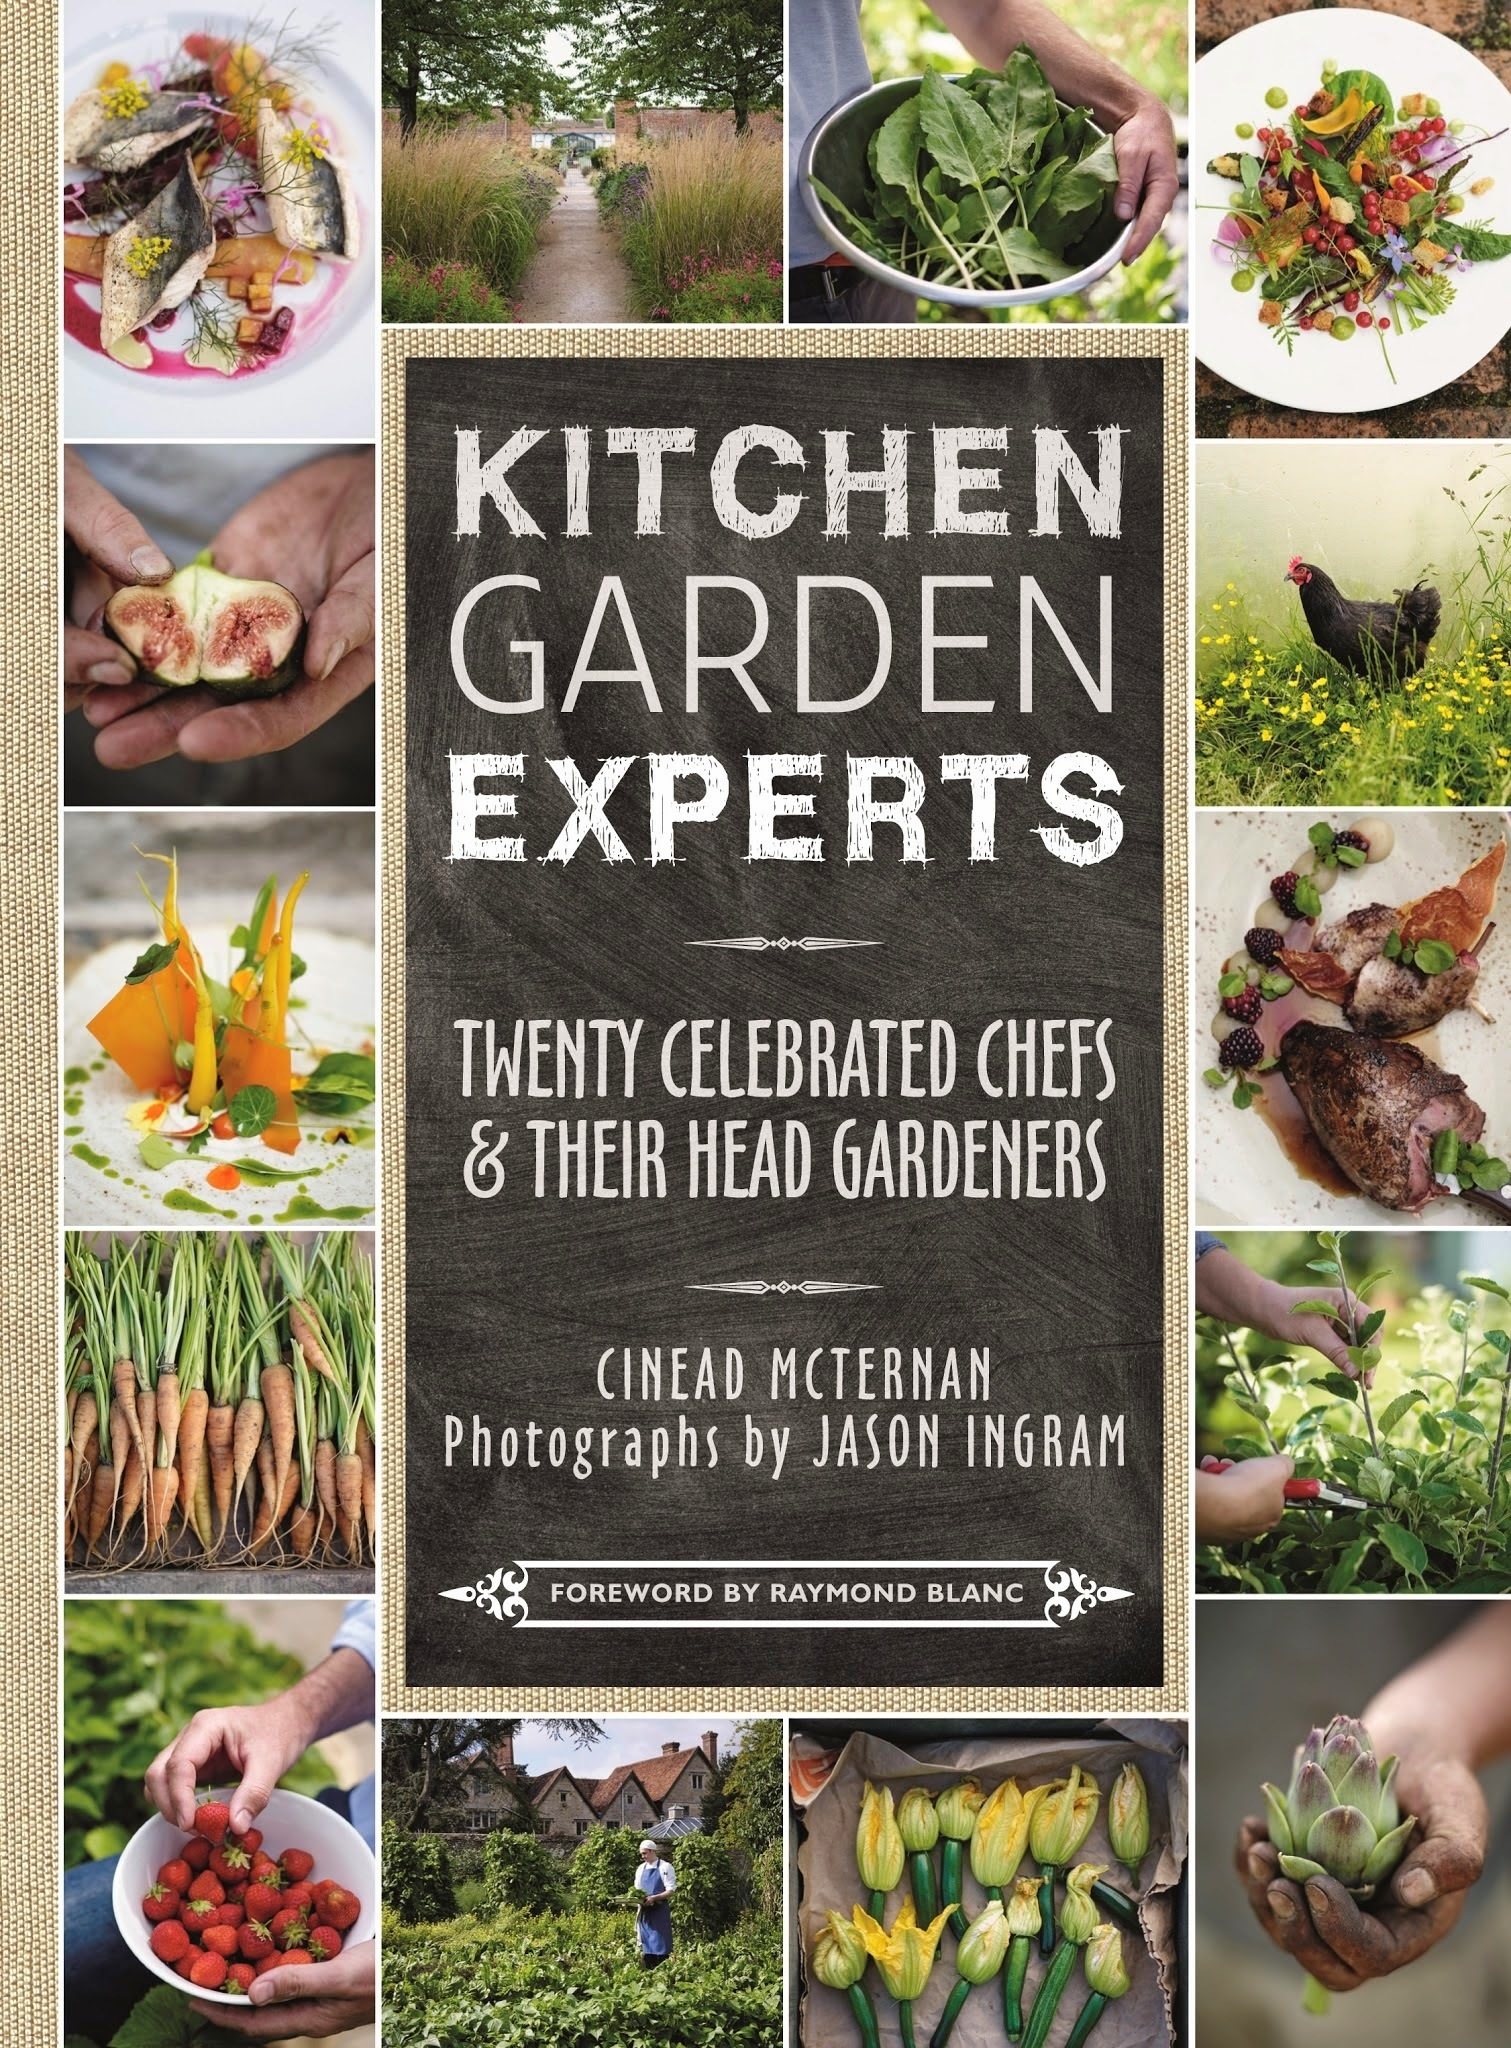 Kitchen Garden Experts, Review and Giveaway